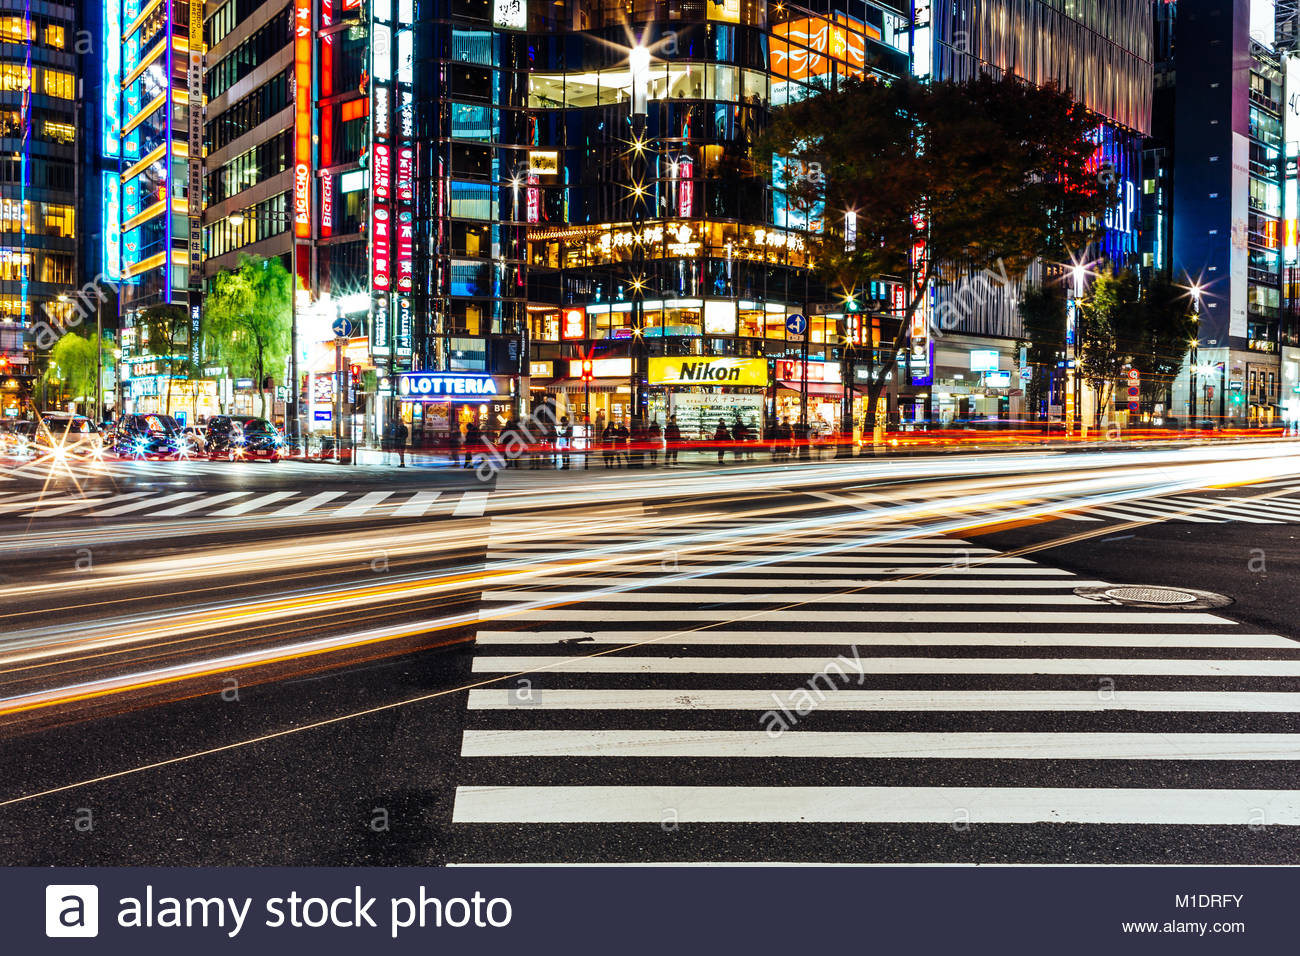 Longtime Exposure in Tokyo - Stock Image